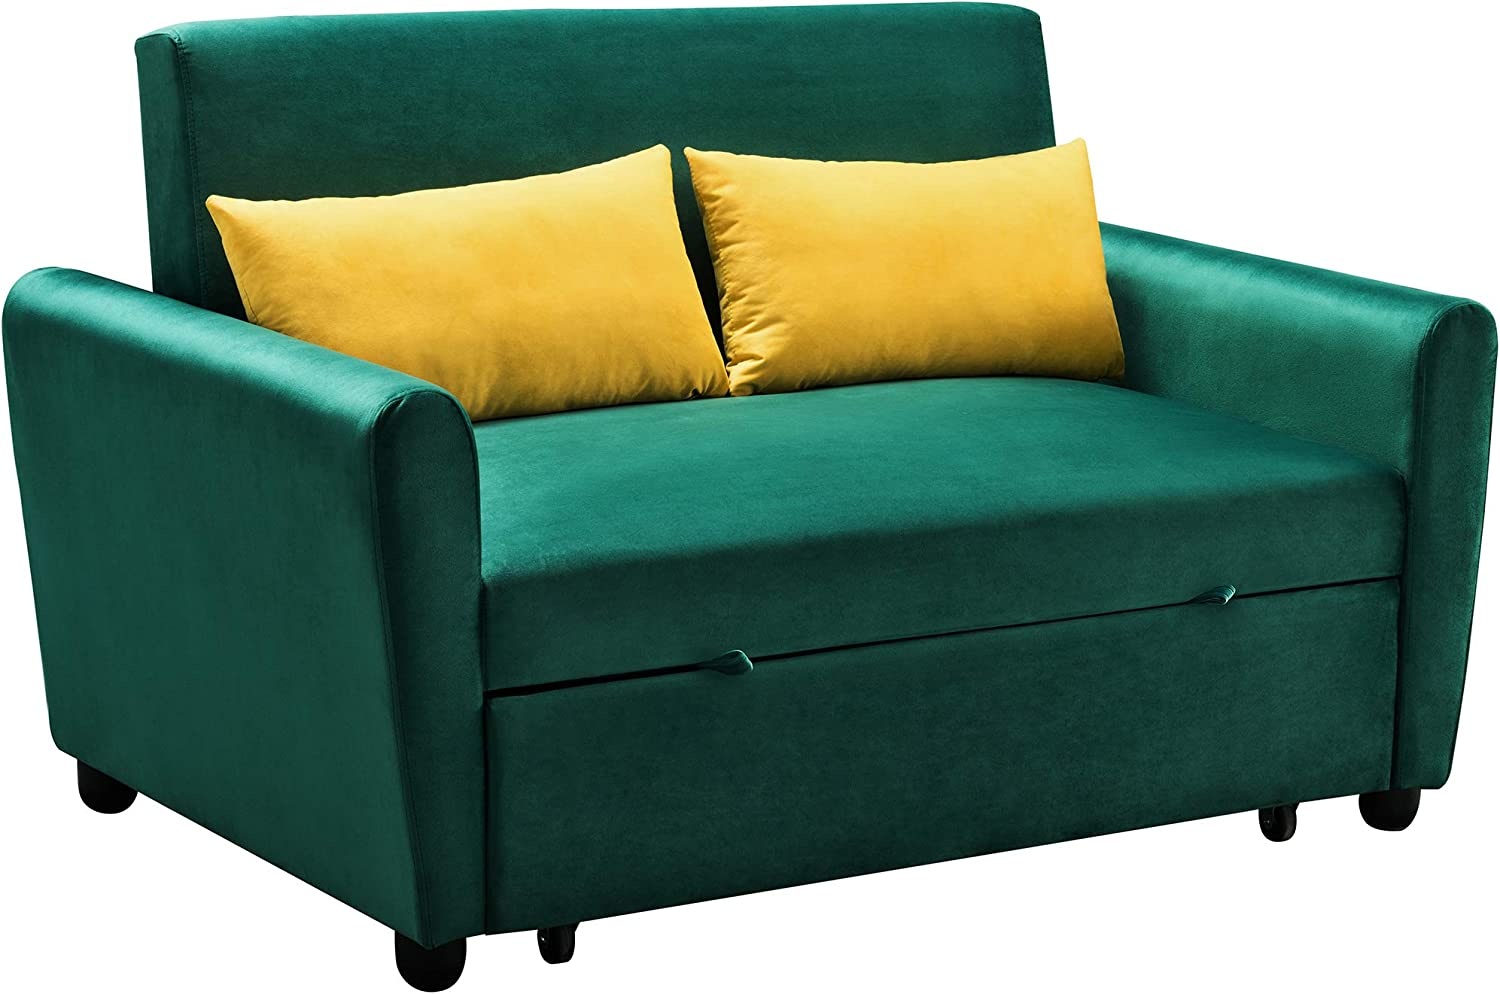 Merax Sleeper Couch, Small Velvet Sofa for Living Room or Bedroom, Including Pull Out Bed Sofabed, Compact, Green